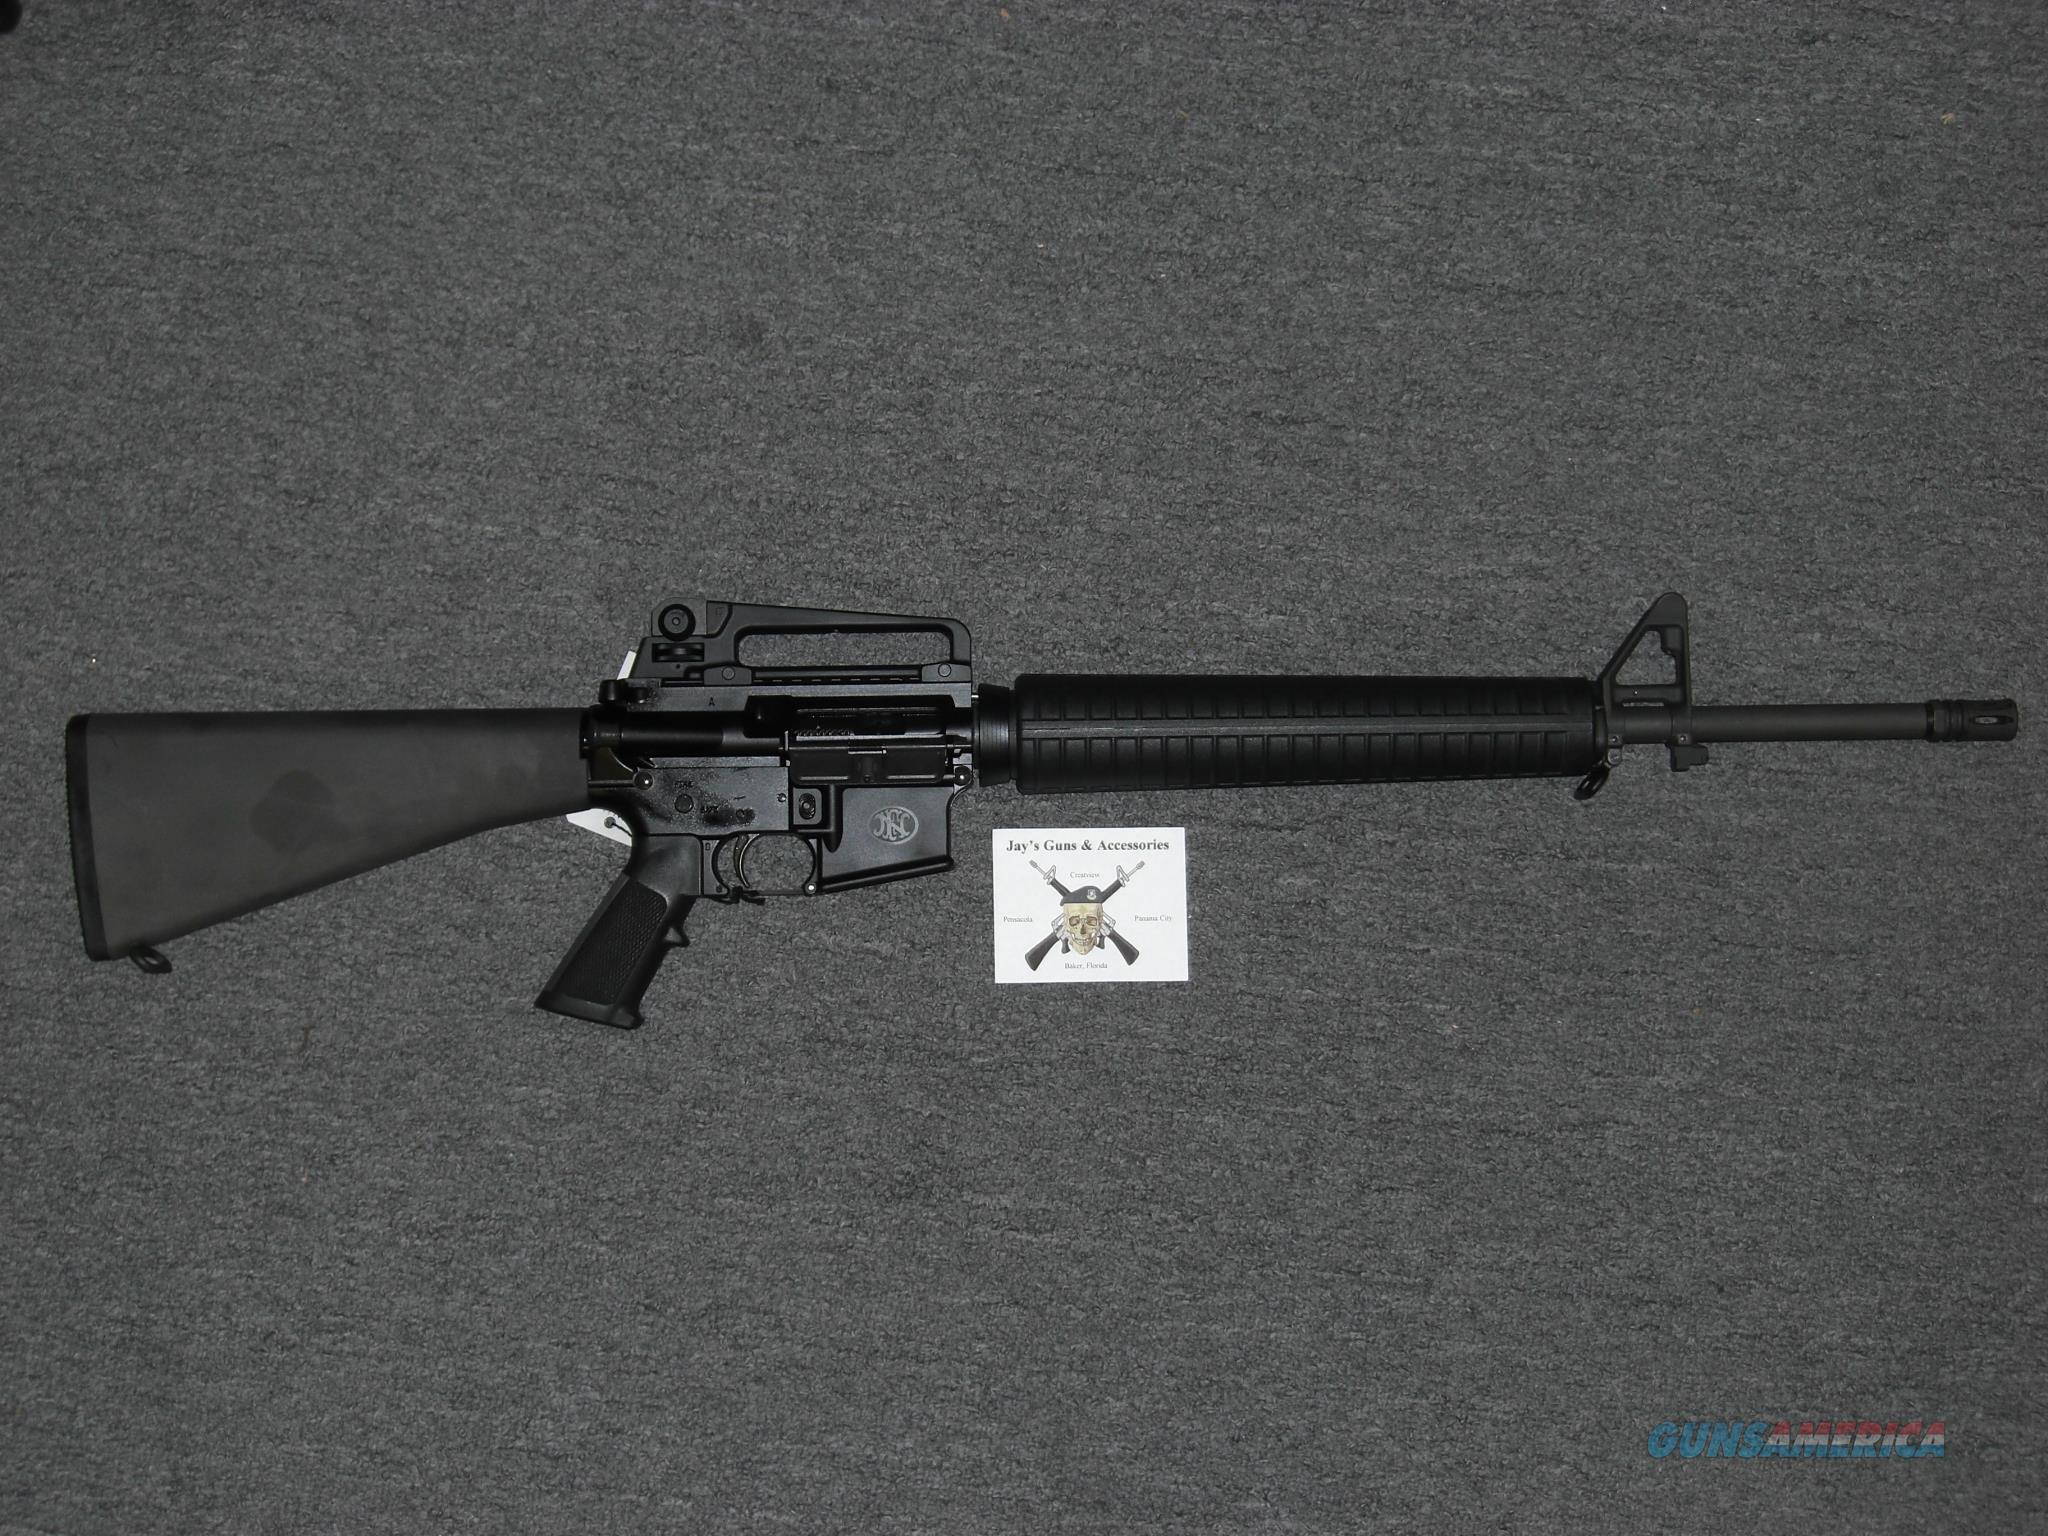 FNH FN-15  Guns > Rifles > FNH - Fabrique Nationale (FN) Rifles > Semi-auto > Other